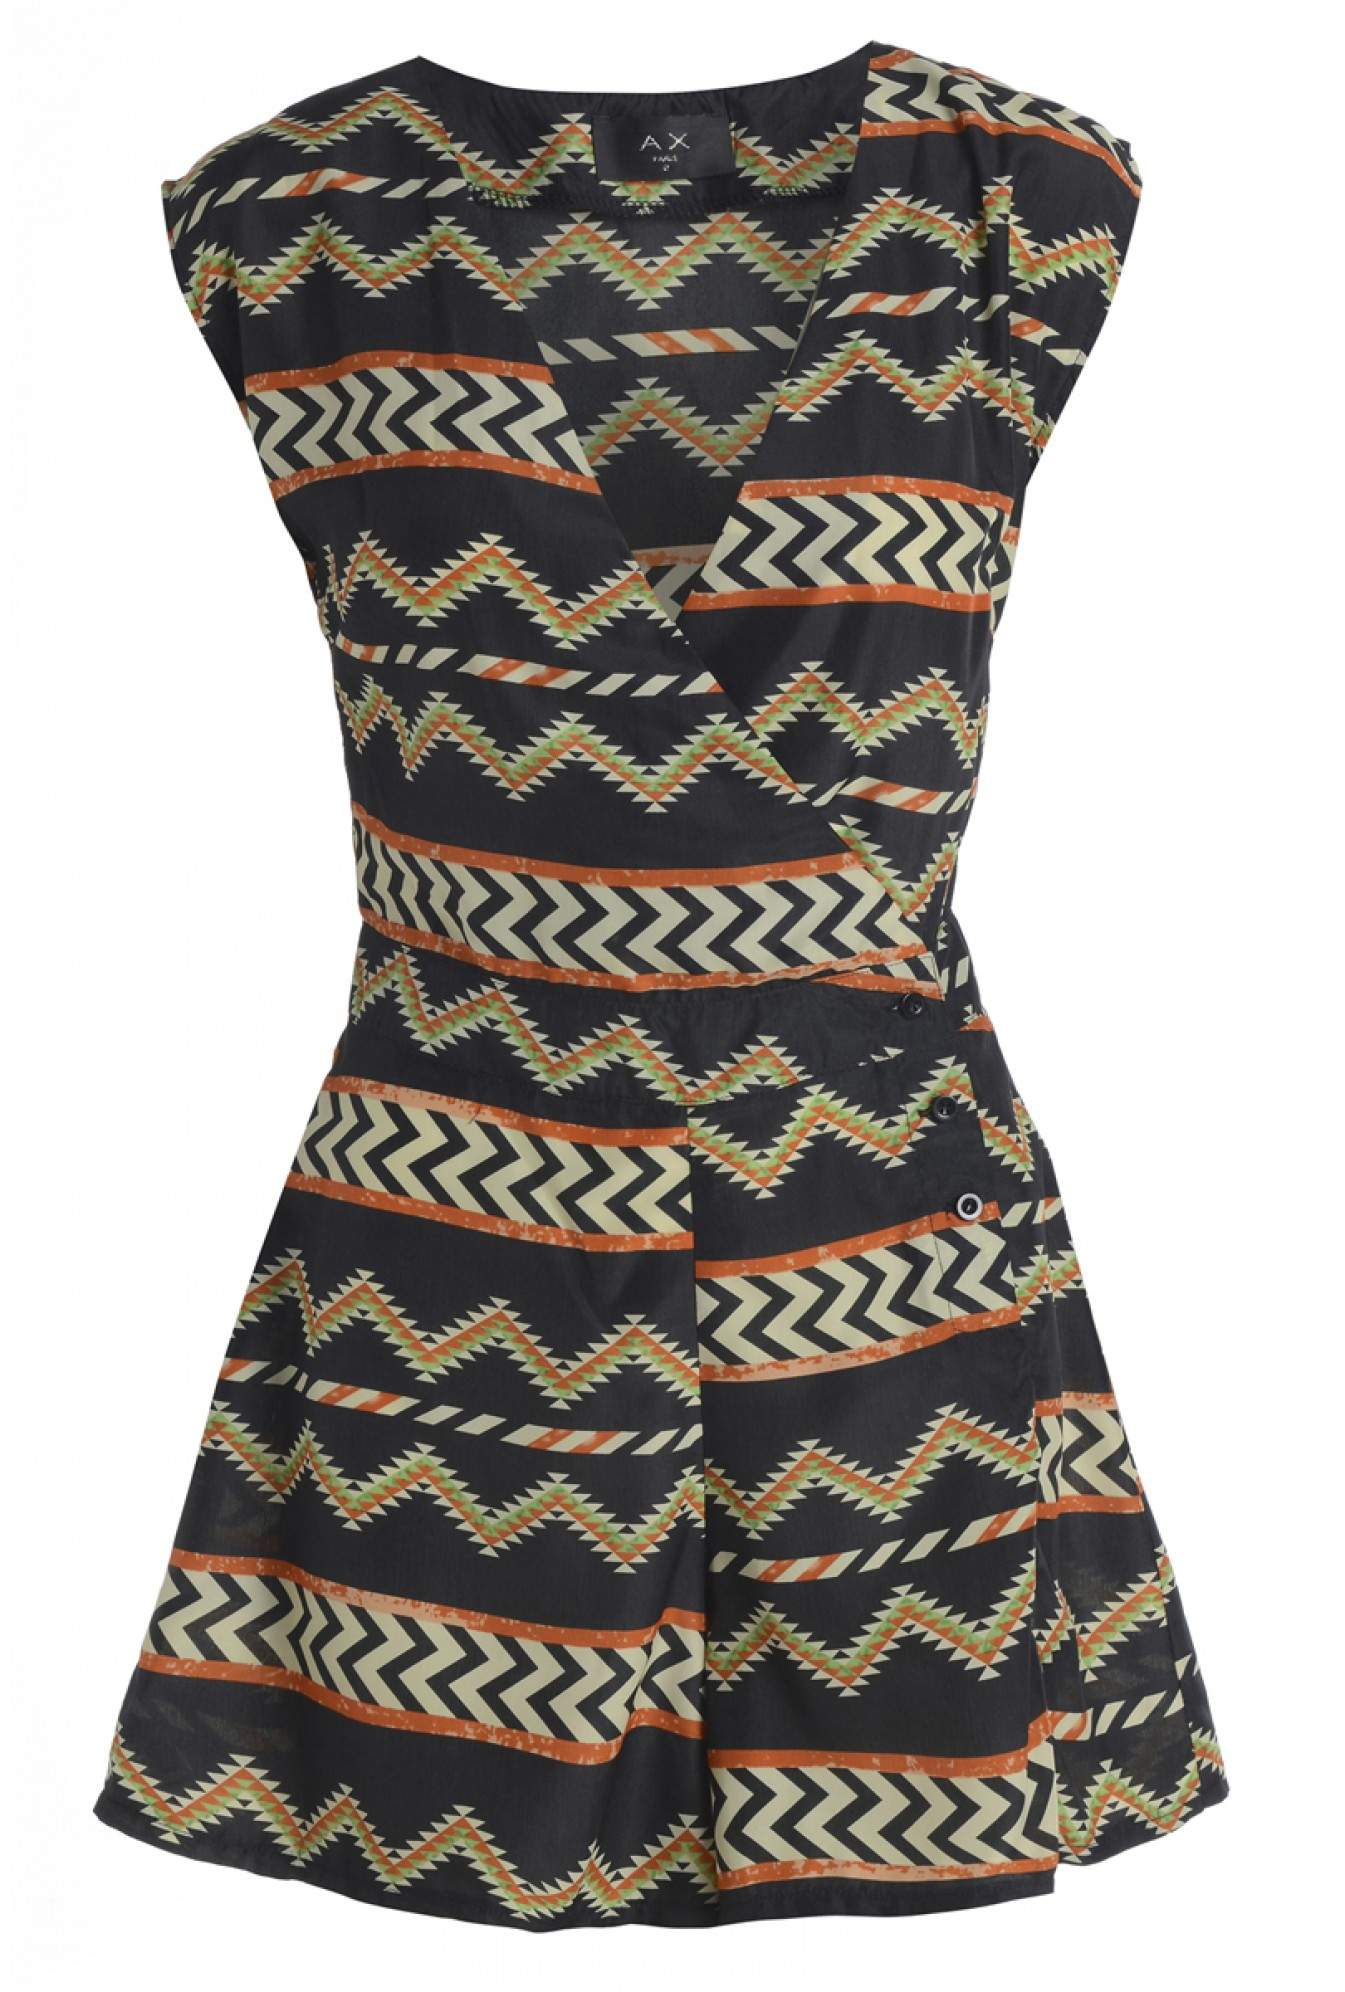 499282e1687 More Views. Brenda Zig Zag Wrap V Front Playsuit